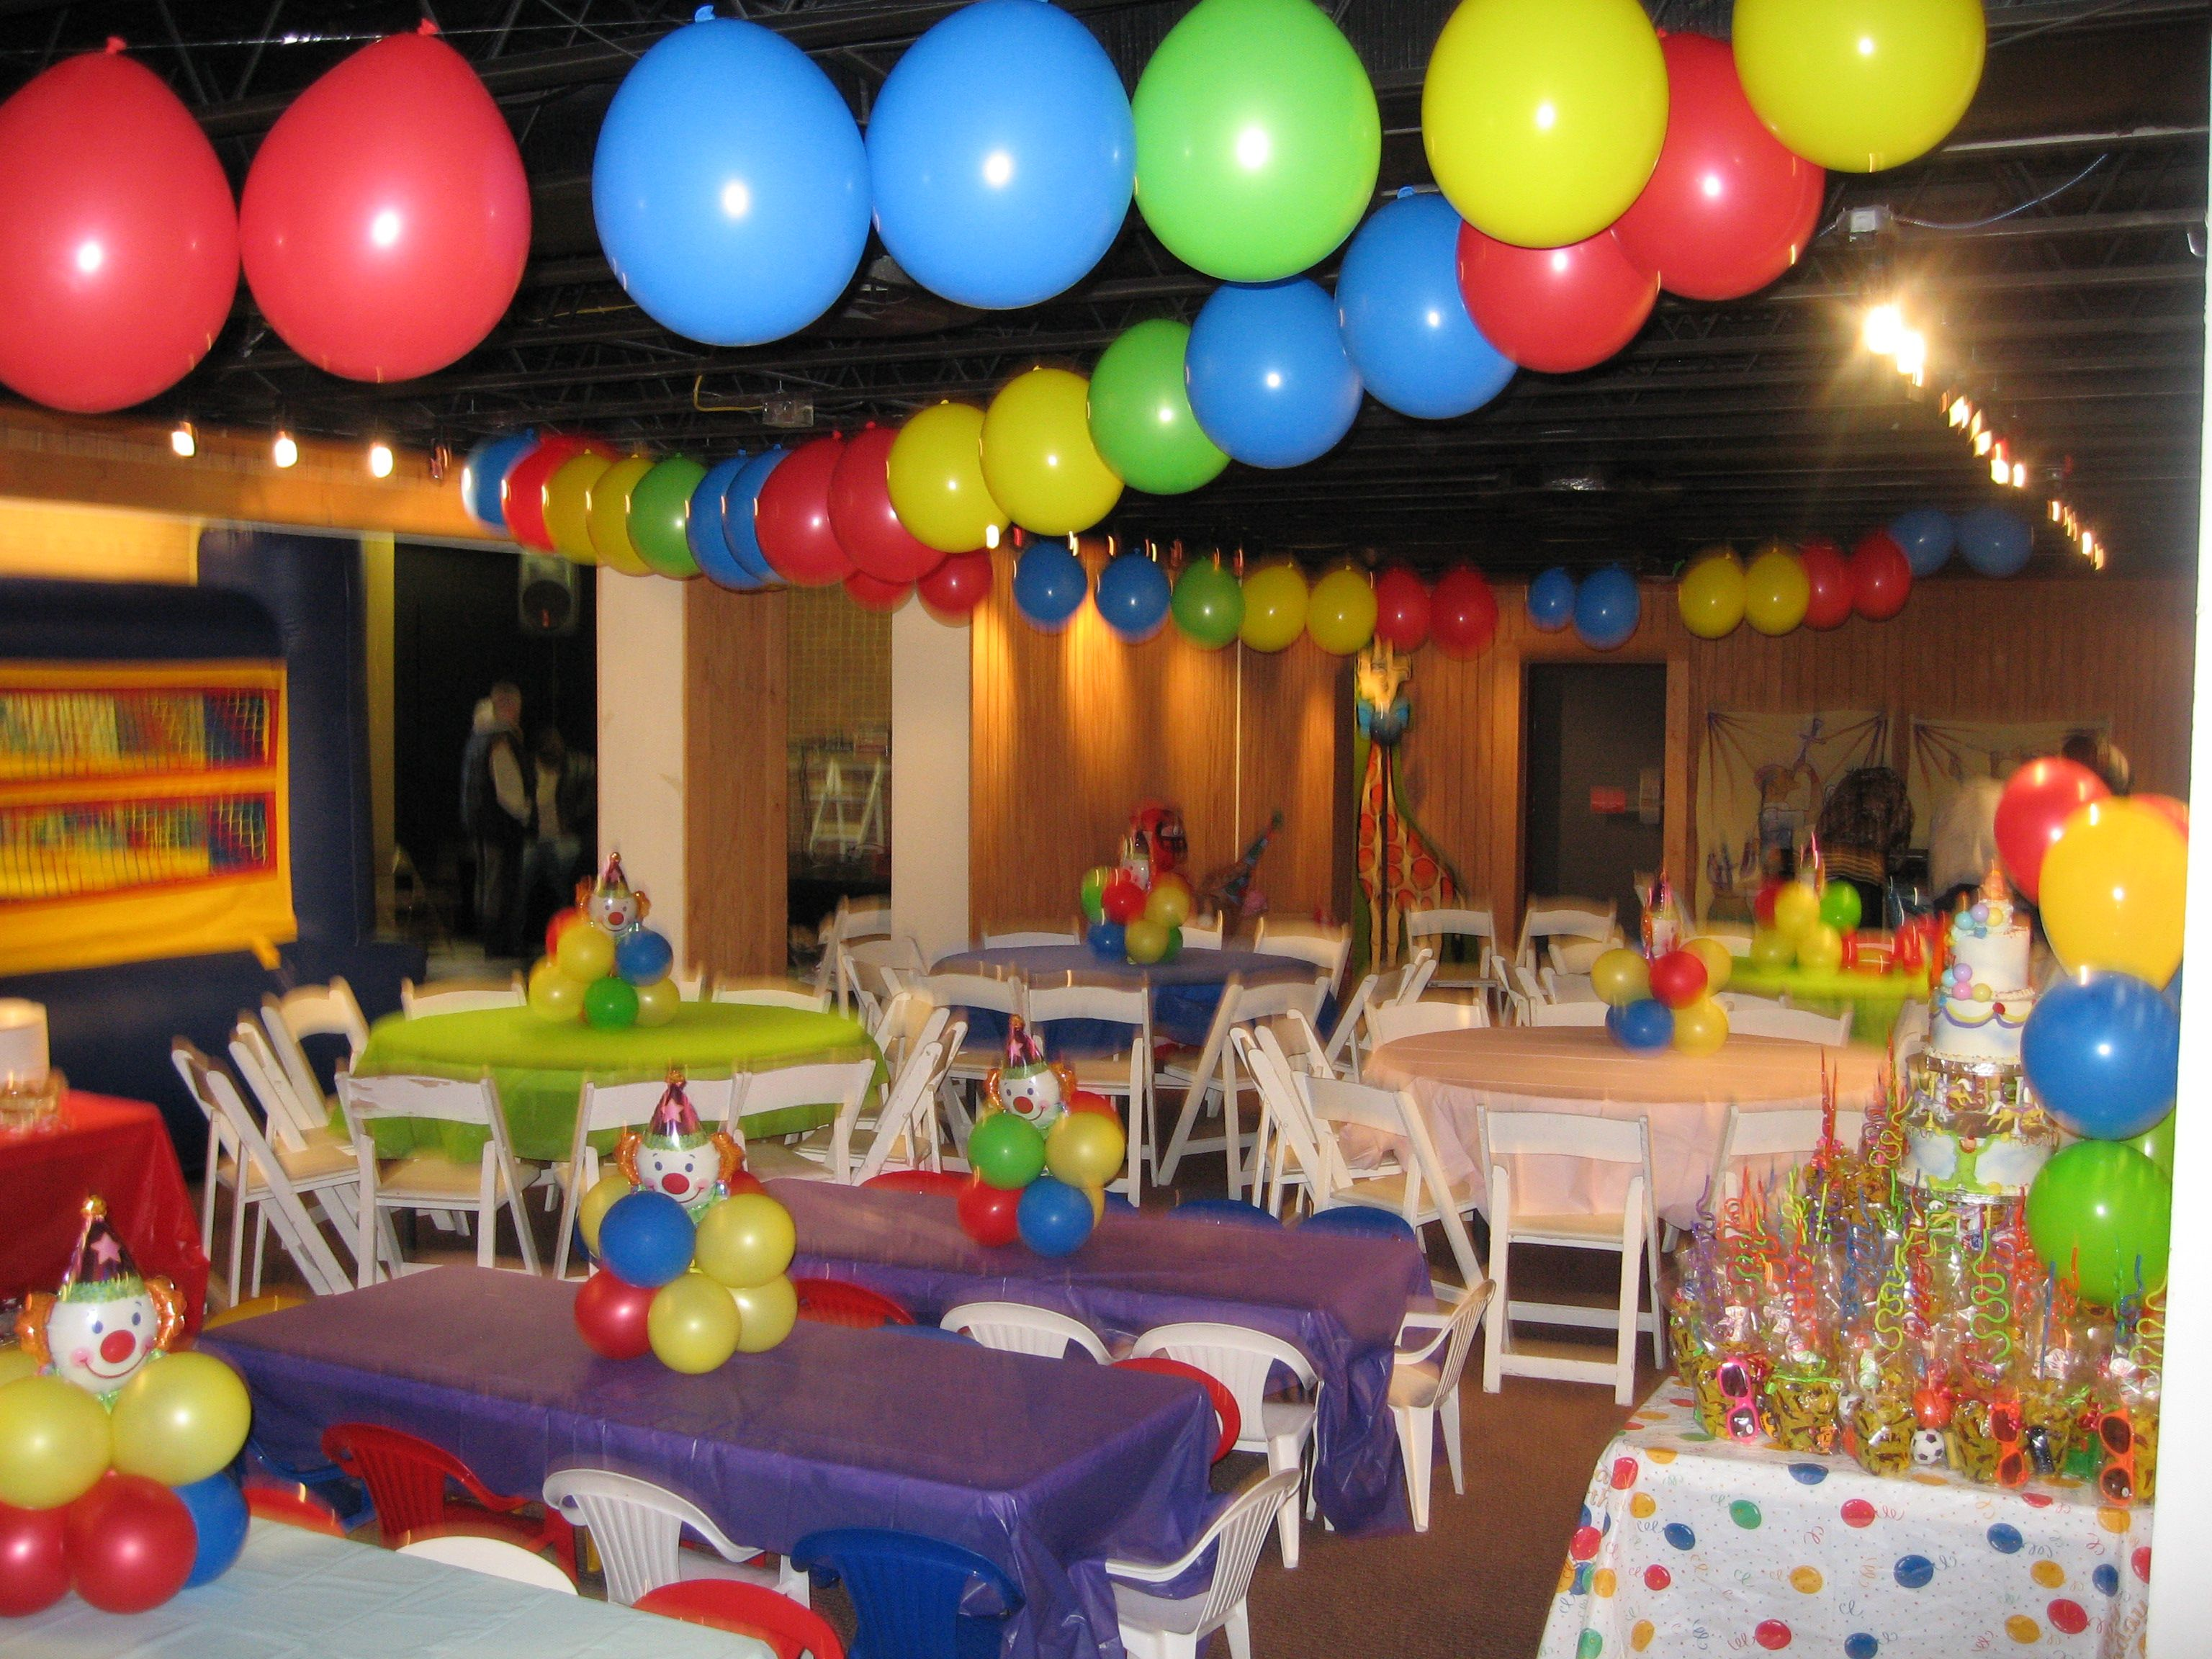 Balloon-Ceiling-Zig-Zag-Carnival-ceiling-Decor-CPs.jpg (3072×2304 ...